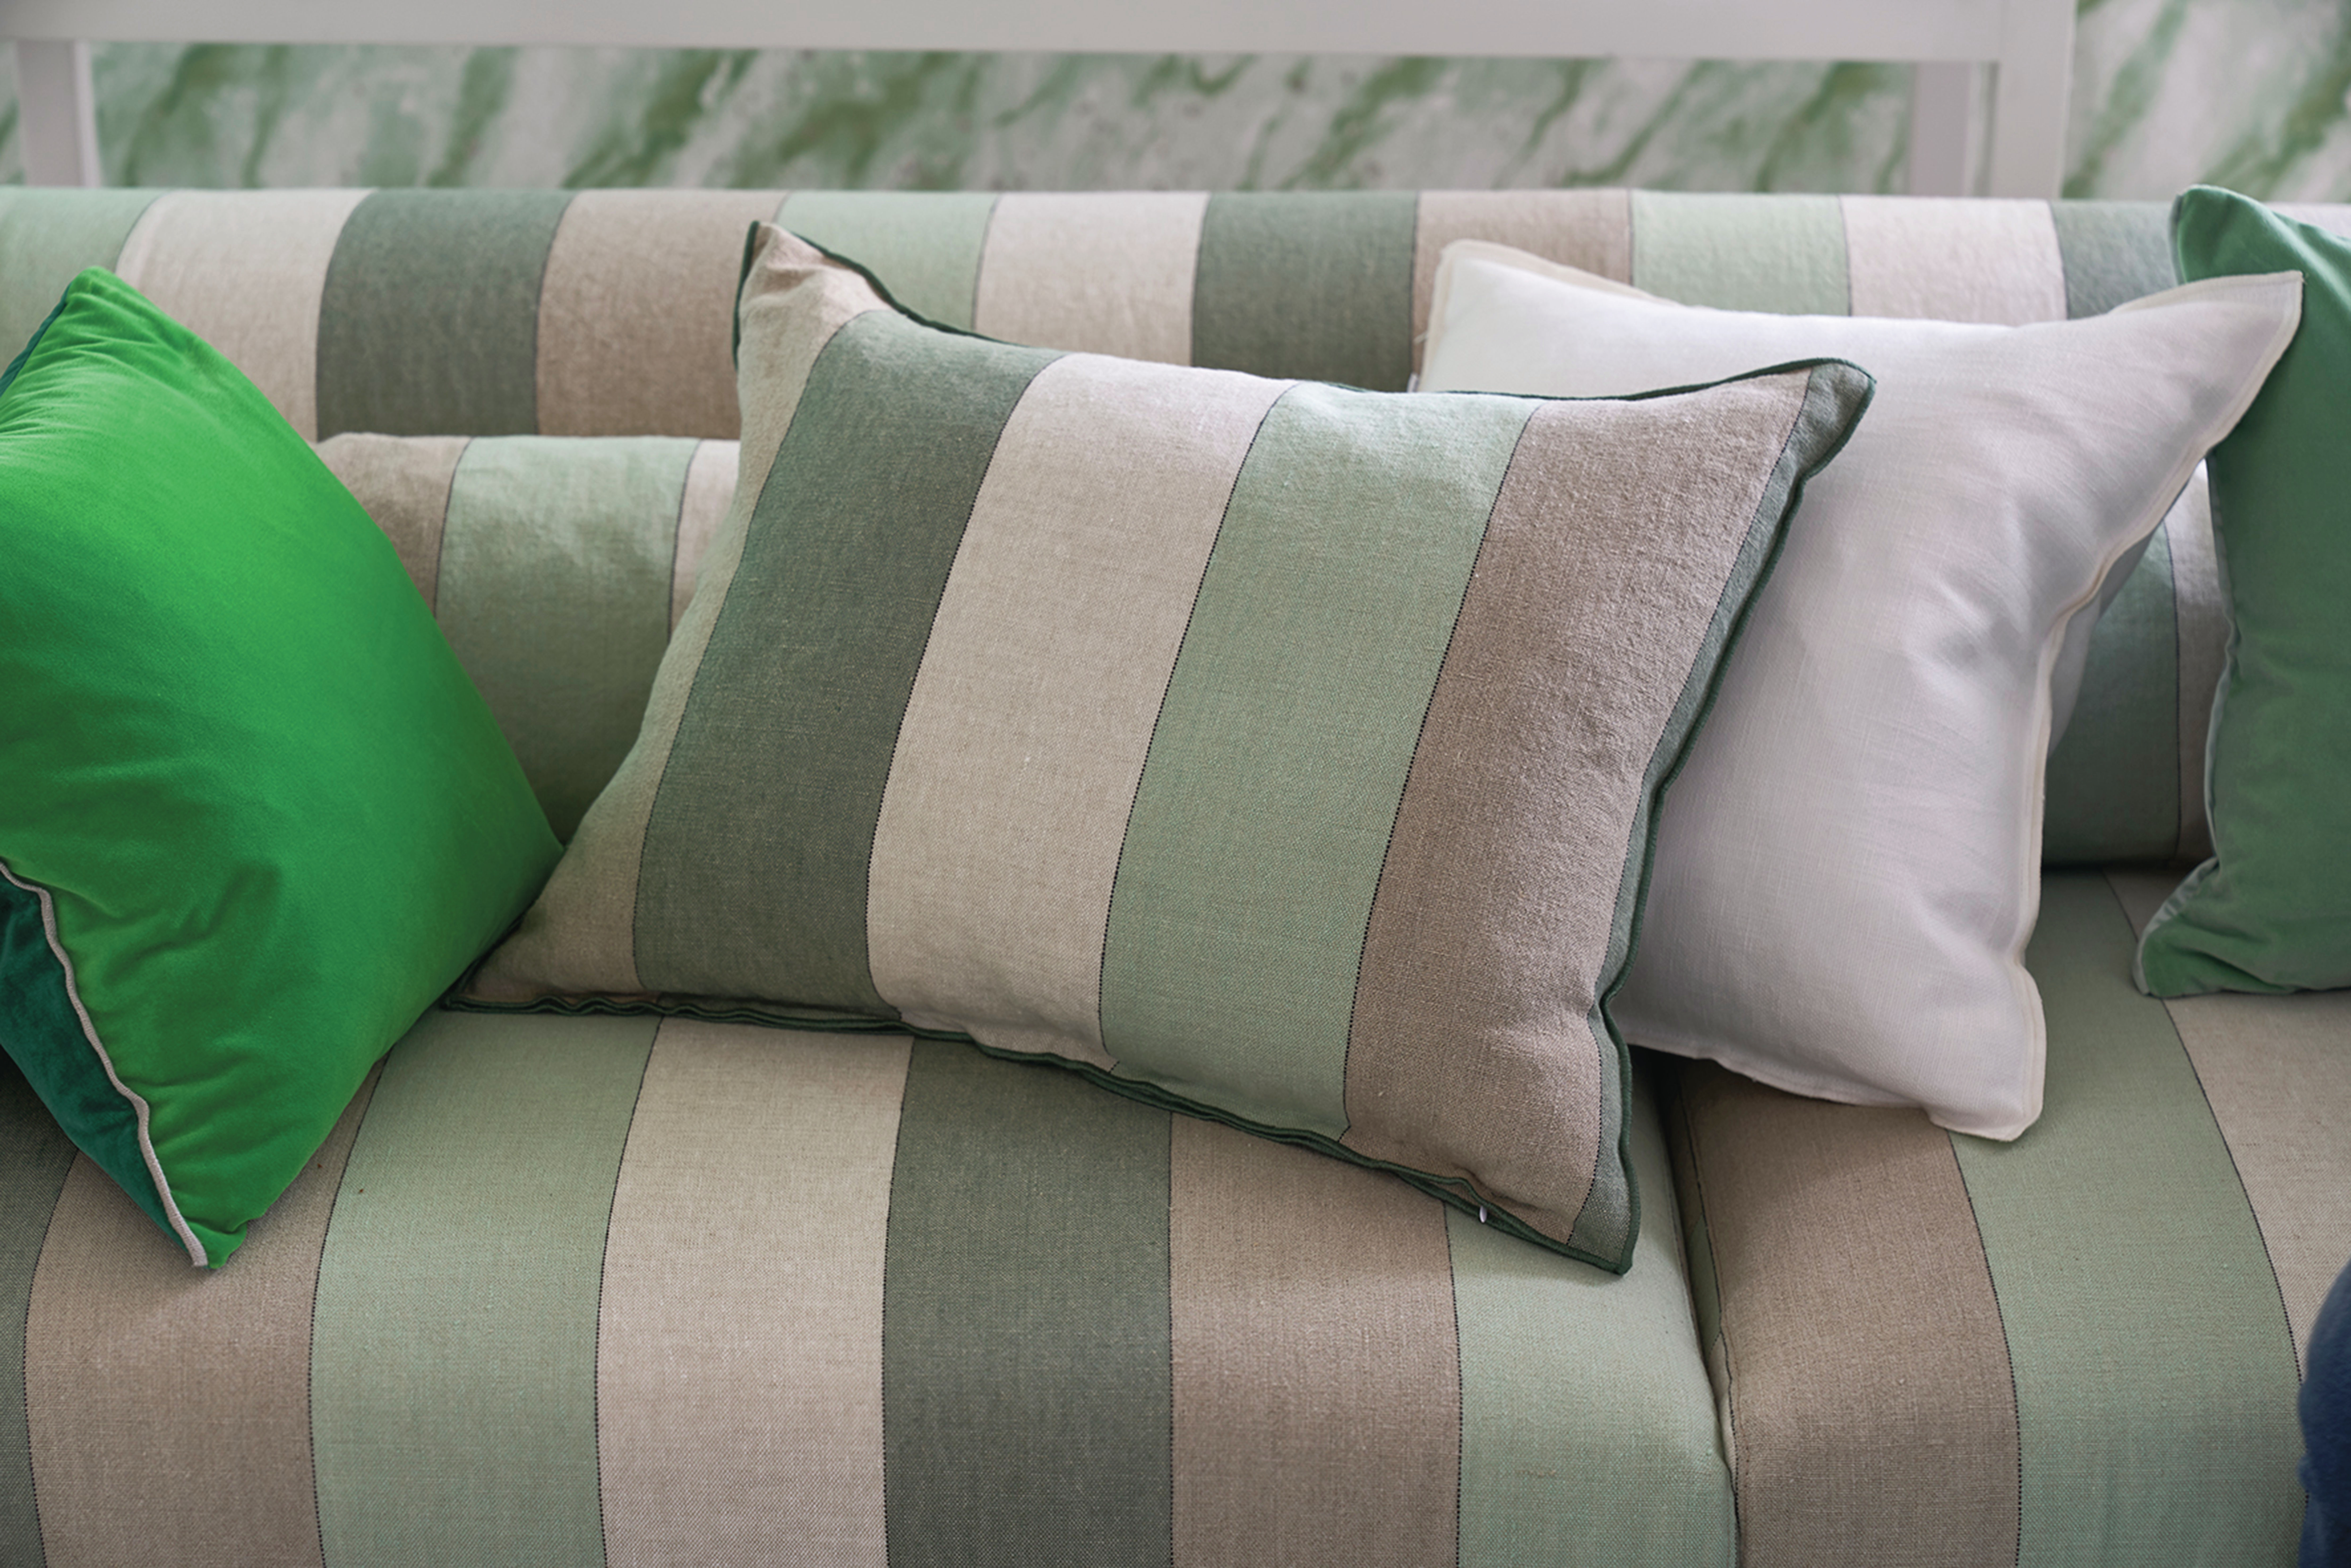 DESIGNERS GUILD CUSHIONS